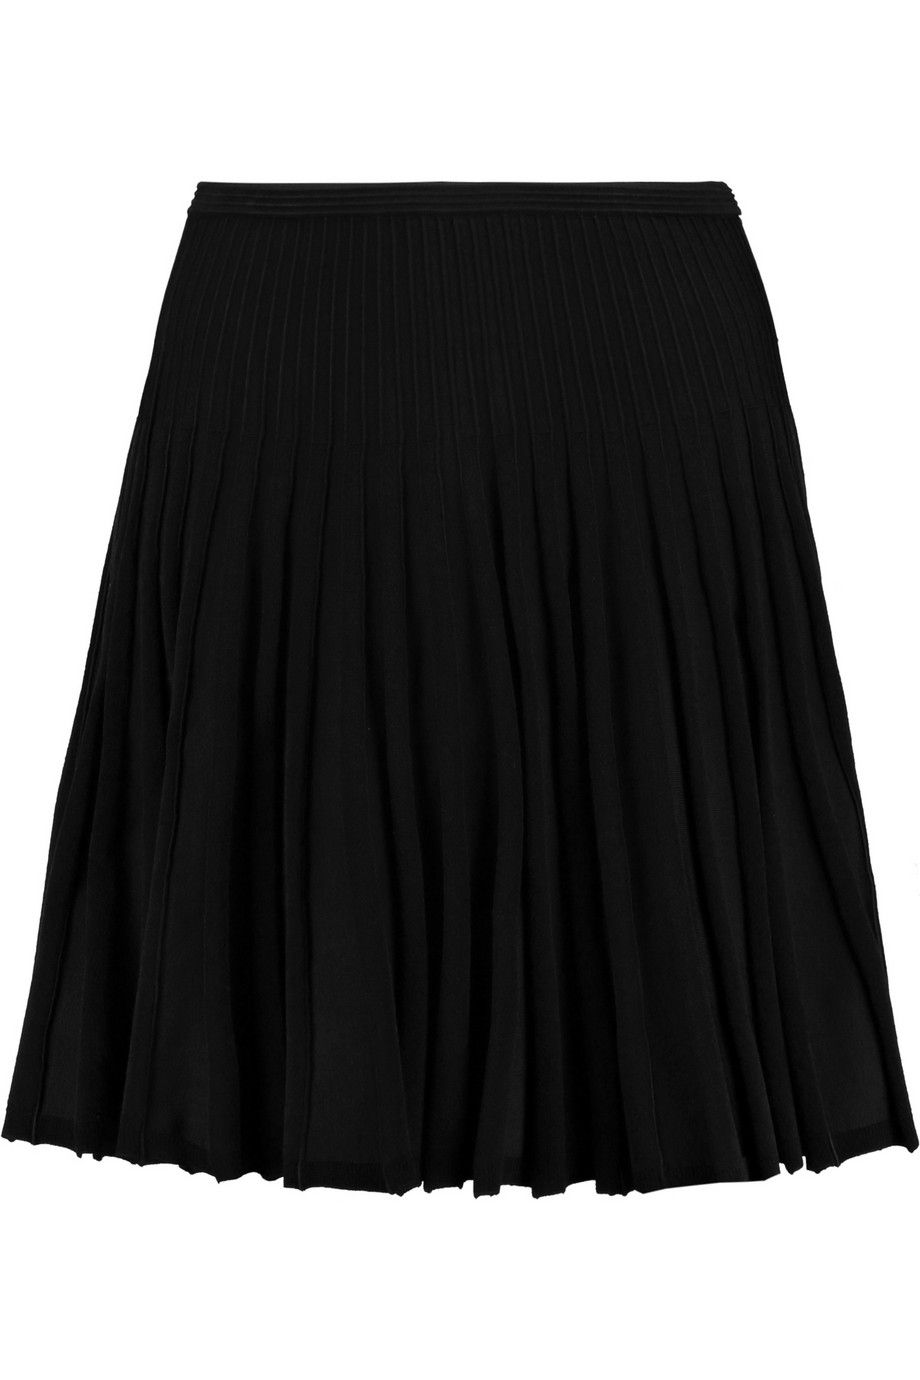 DIANE VON FURSTENBERG Mara Pleated Stretch-Ponte Mini Skirt. #dianevonfurstenberg #cloth #skirt